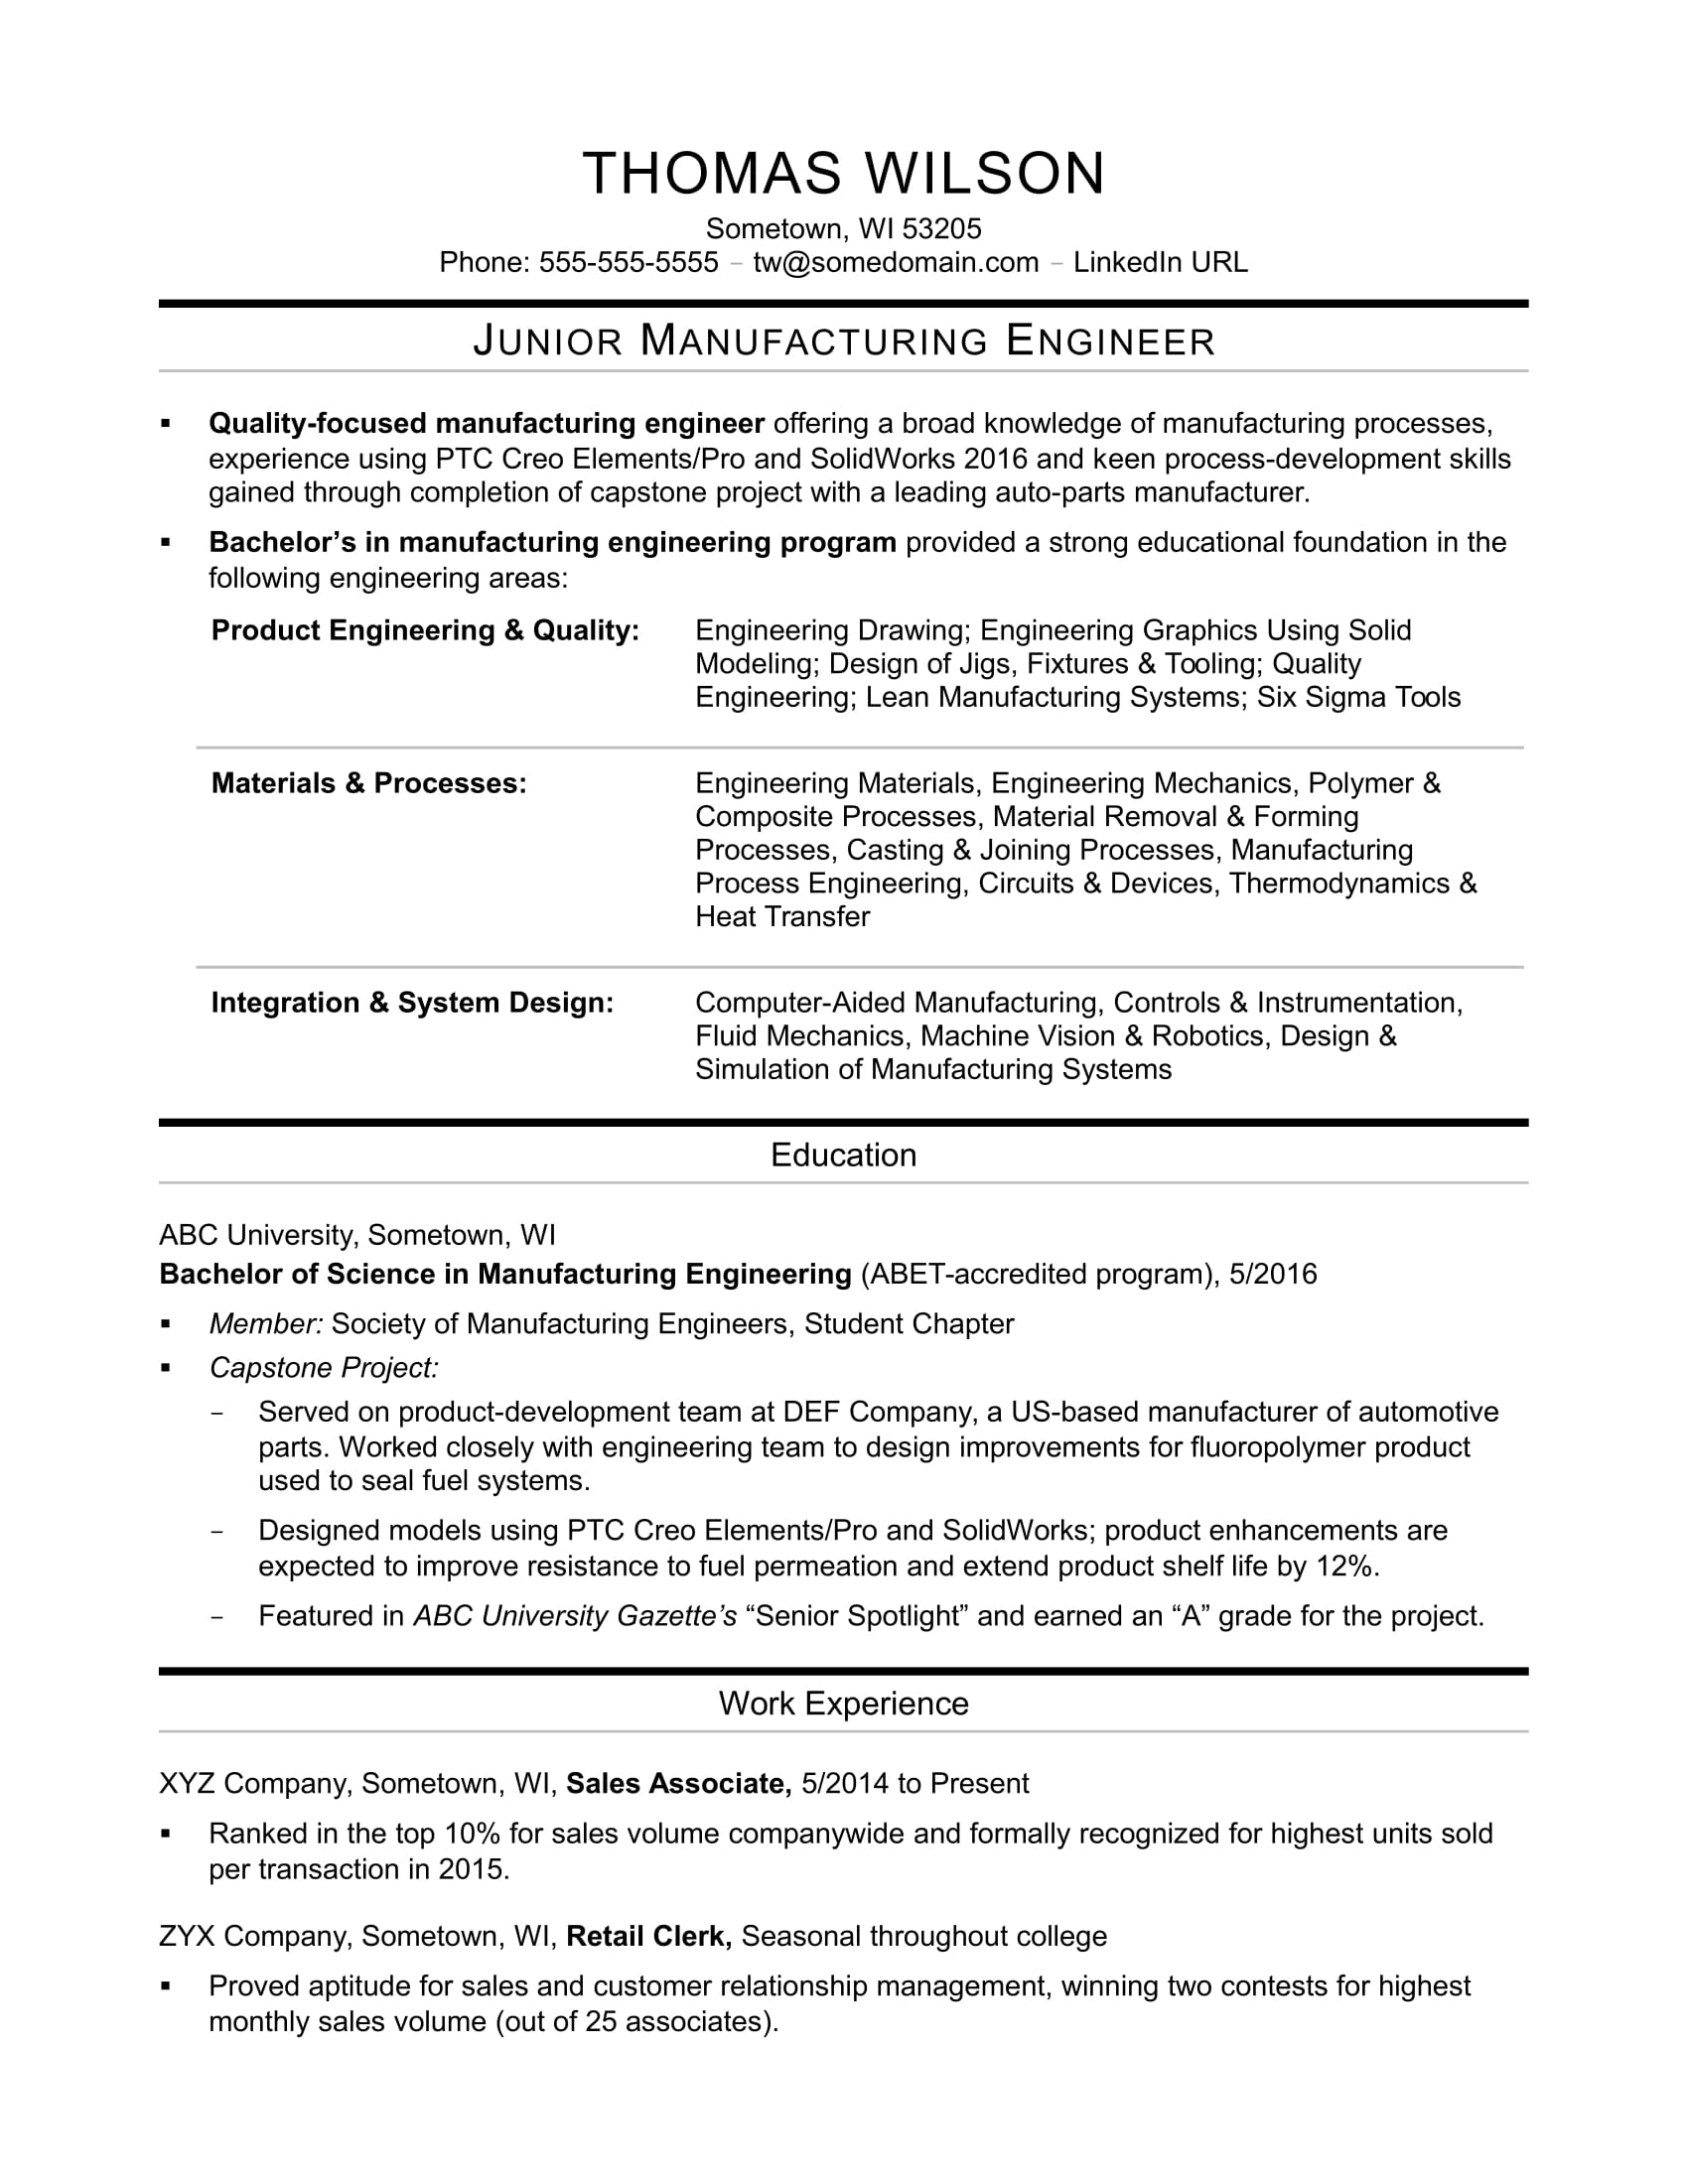 cv template for engineering job